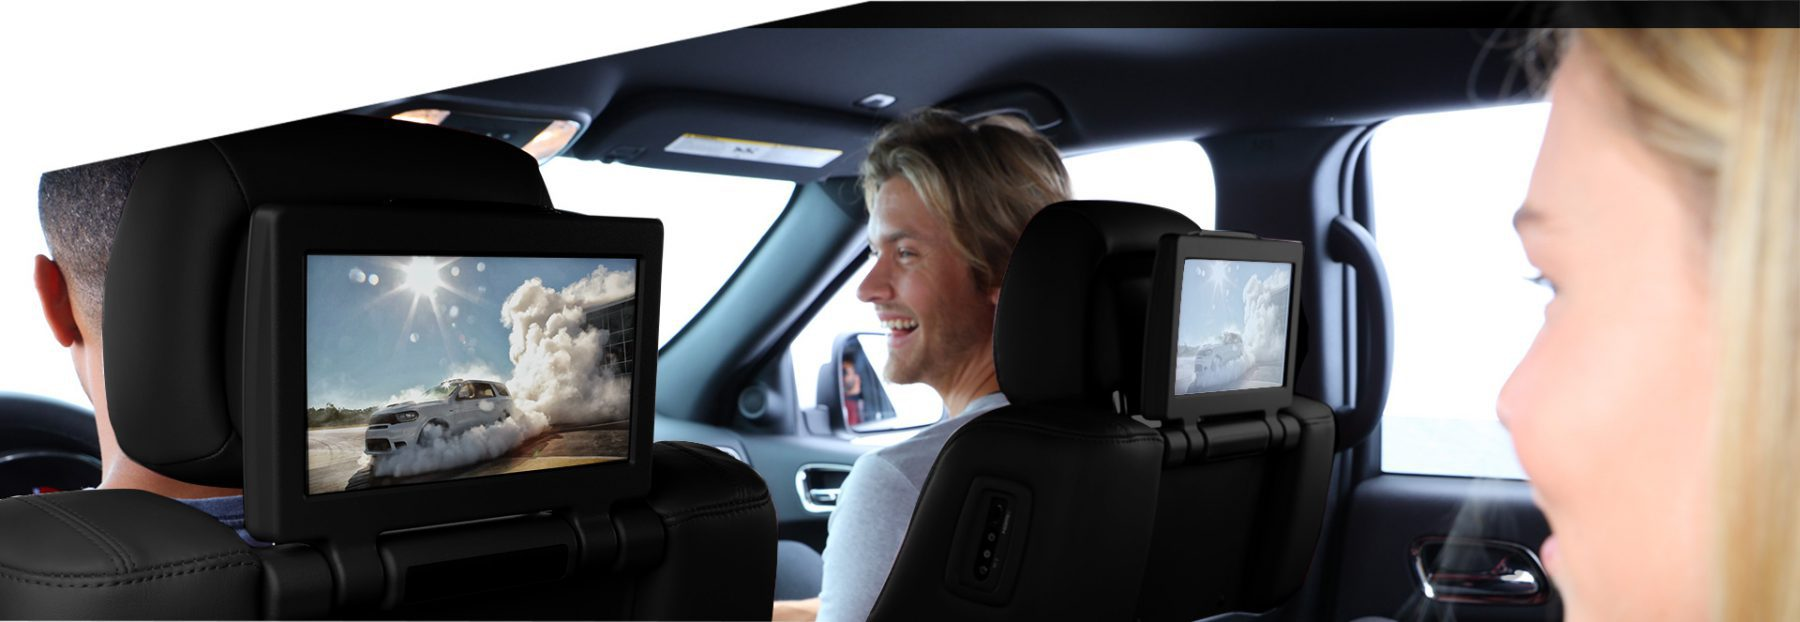 passengers use the integrated screens